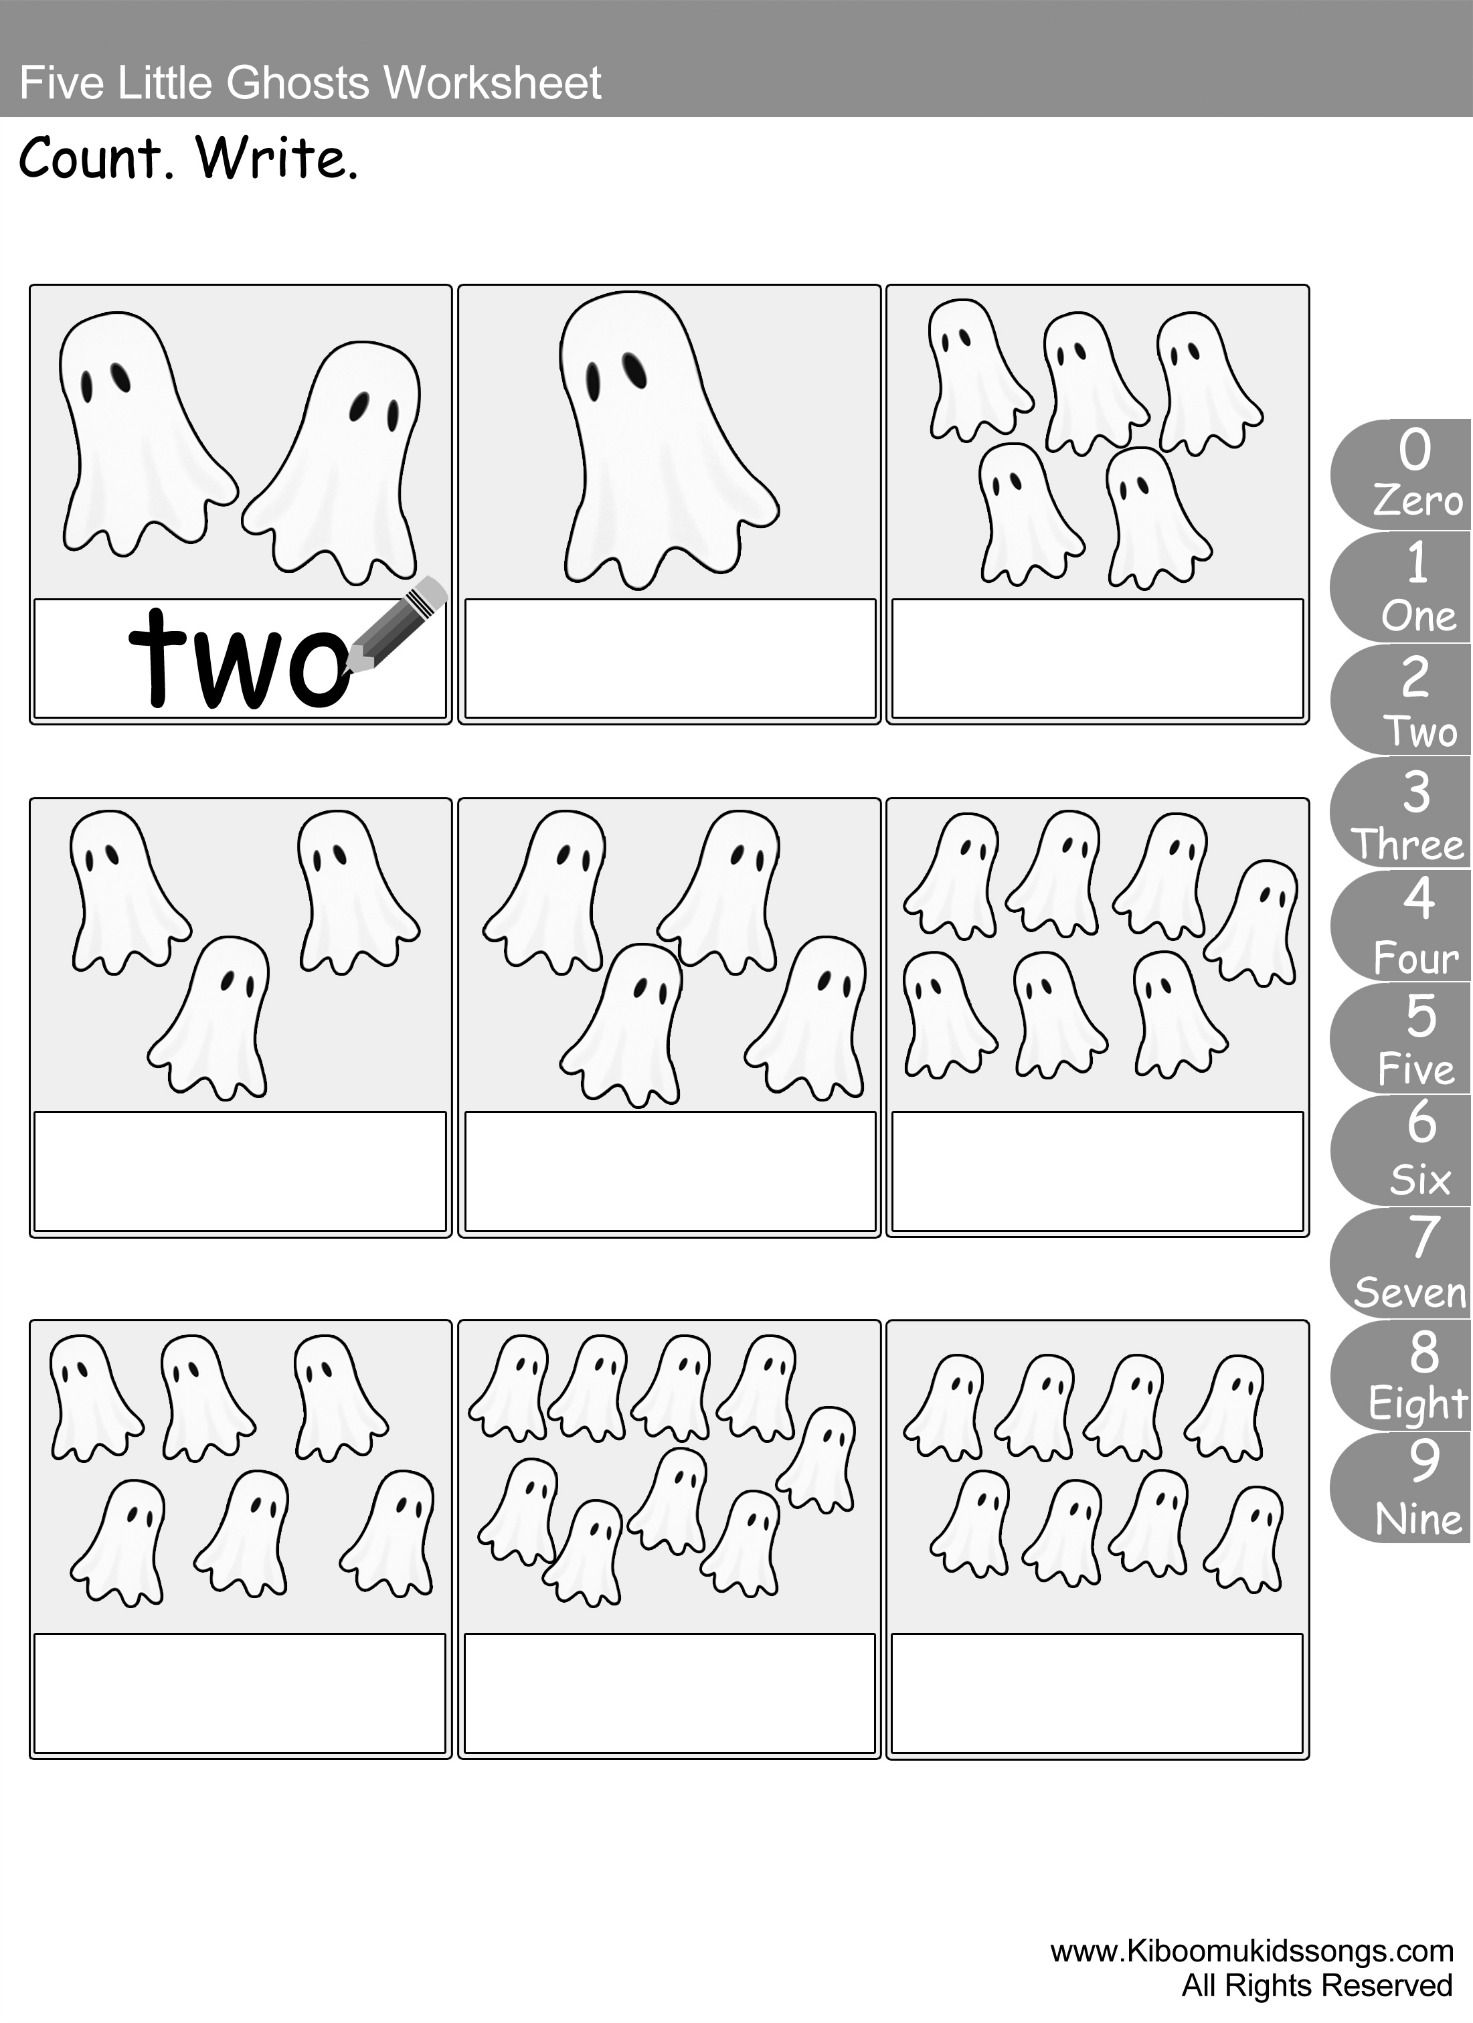 5 Little Ghosts Song And Count And Color Worksheet